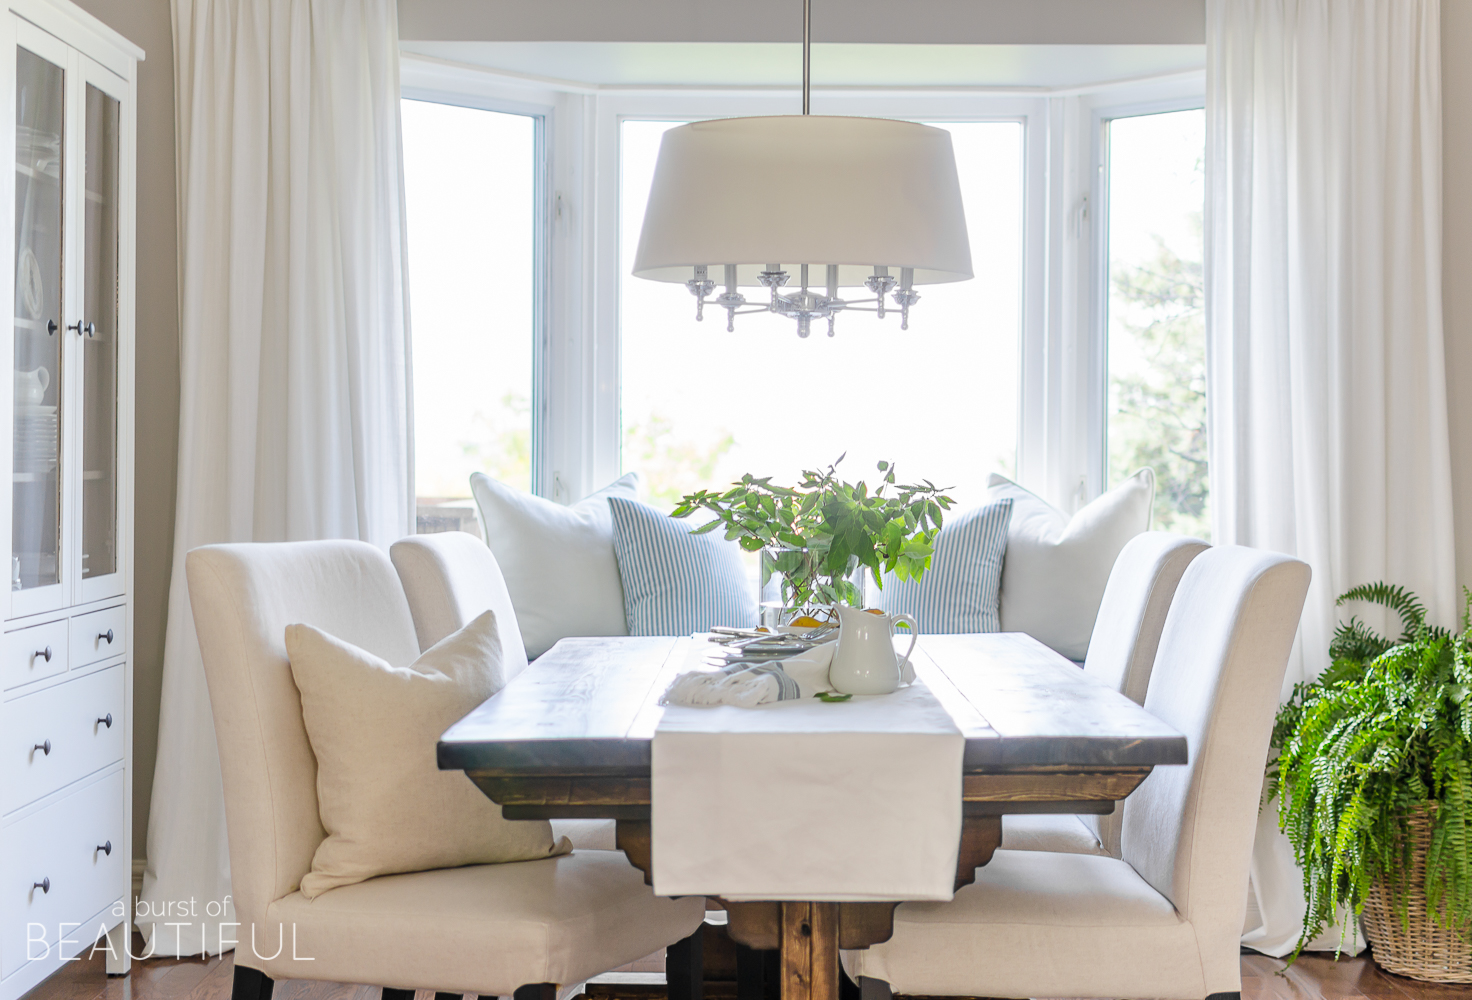 A DIY farmhouse dining table and window bench take center stage in this modern farmhouse dining room.